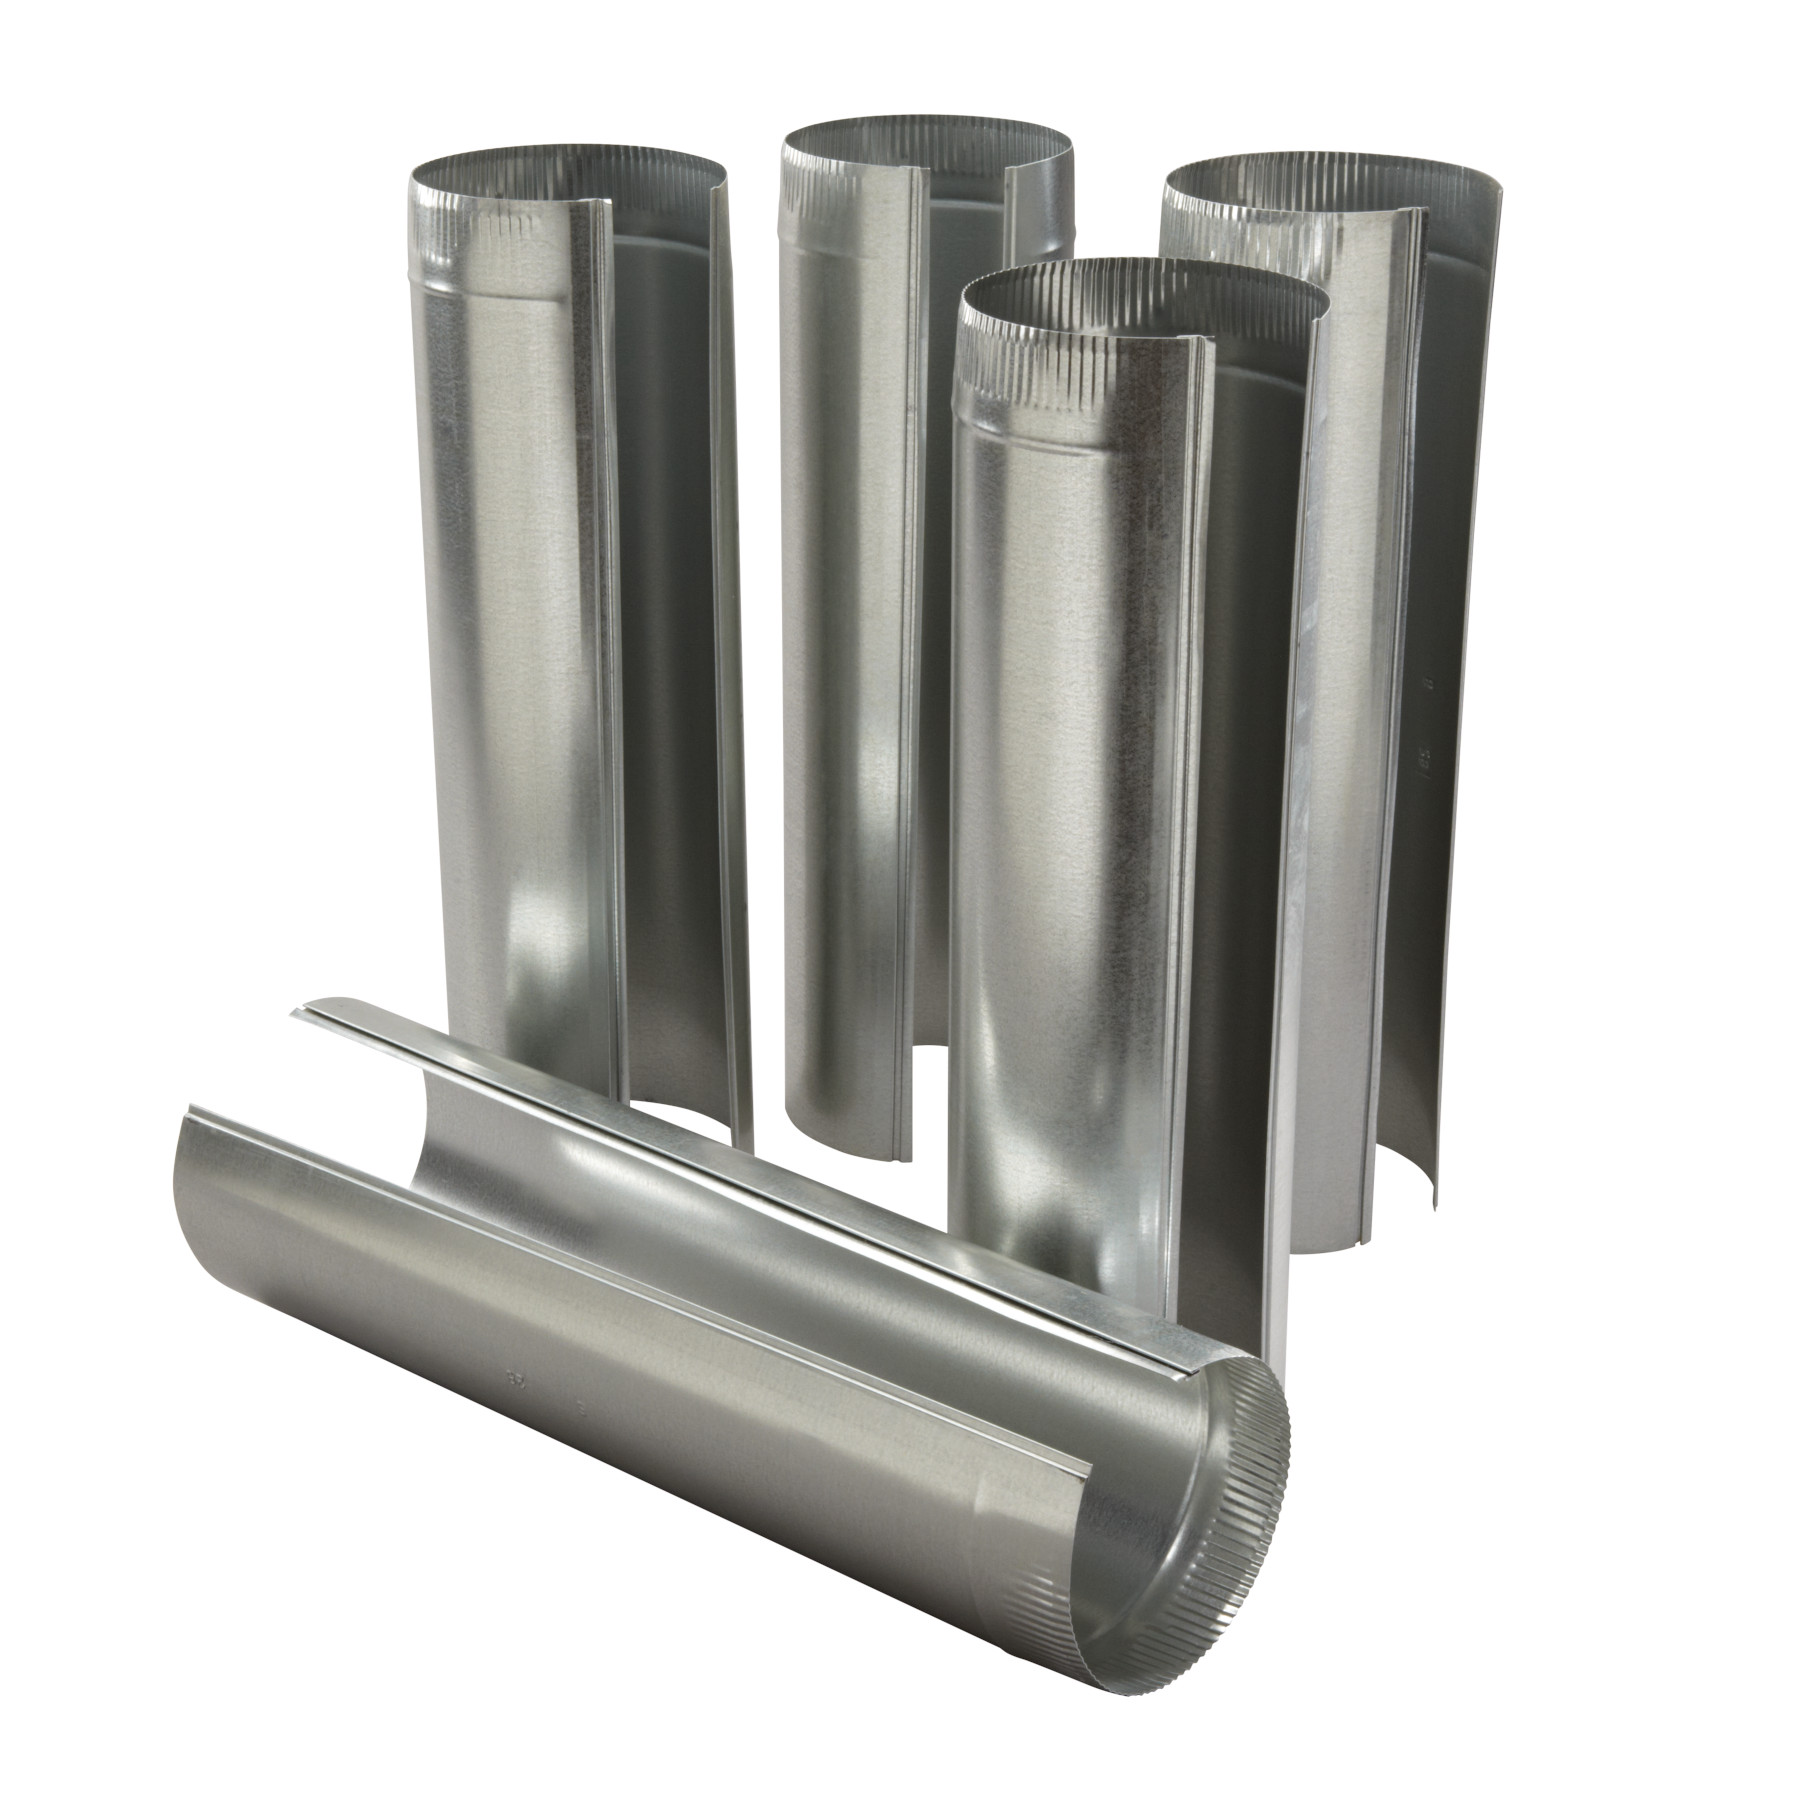 406 6 inch round duct for range hoods